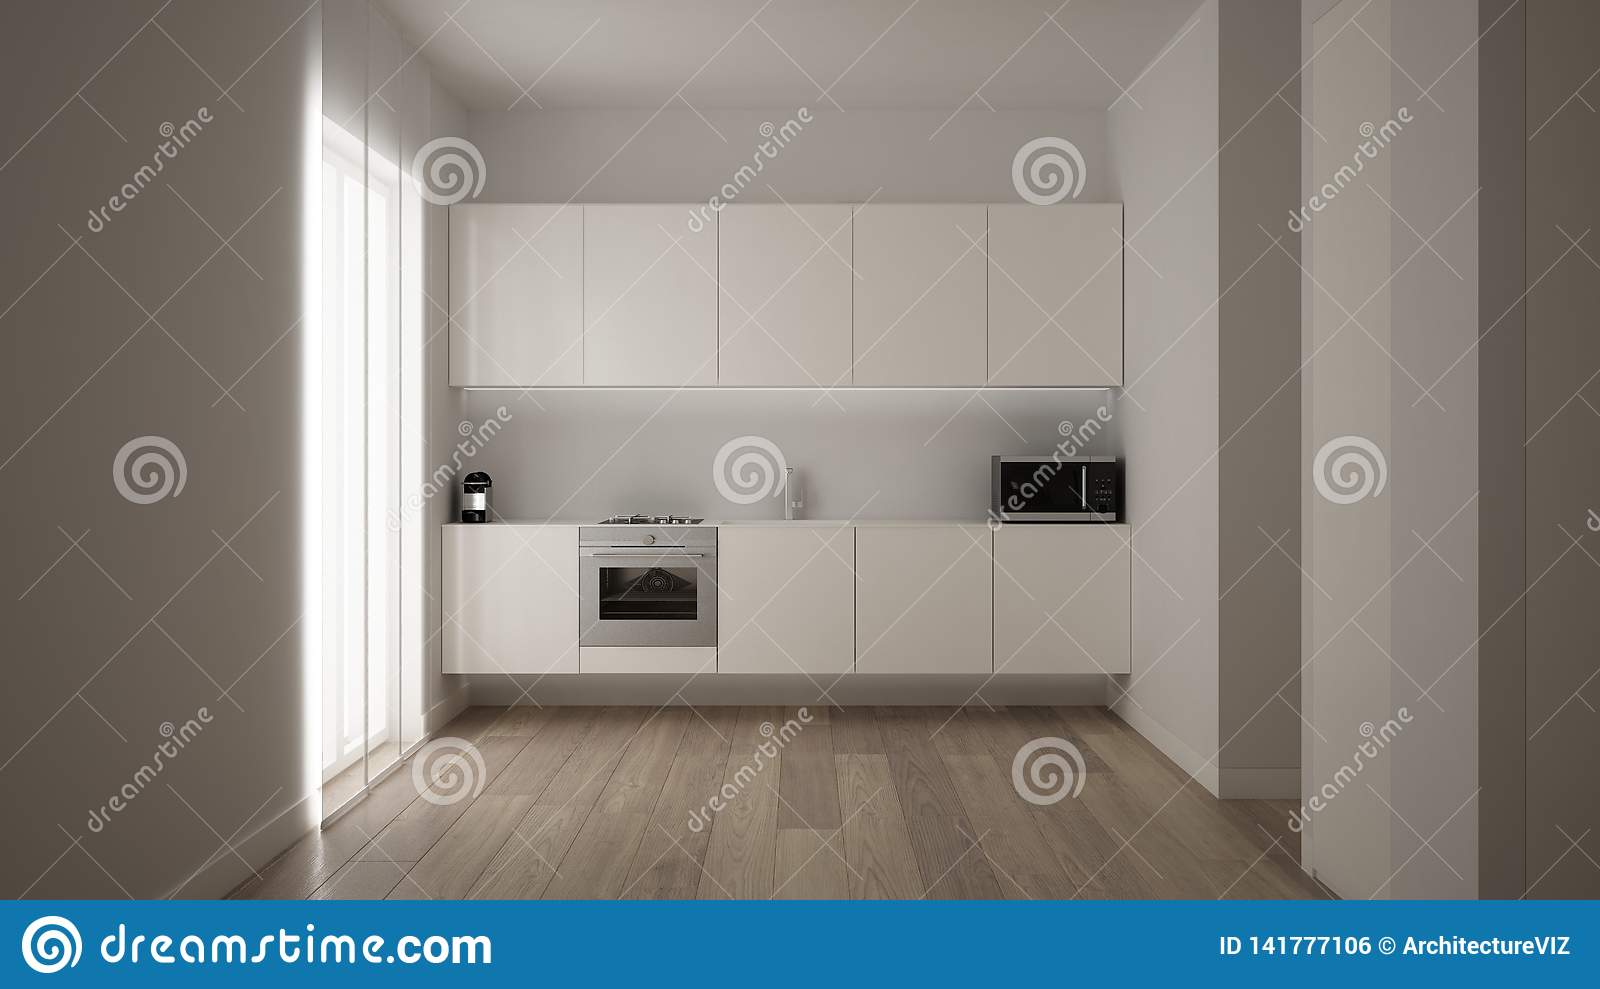 Minimalist White Small Kitchen Design In One Bedroom Apartment With Parquet Floor And Window With Modern Curtain Clean Interior Stock Illustration Illustration Of Bright Contemporary 141777106